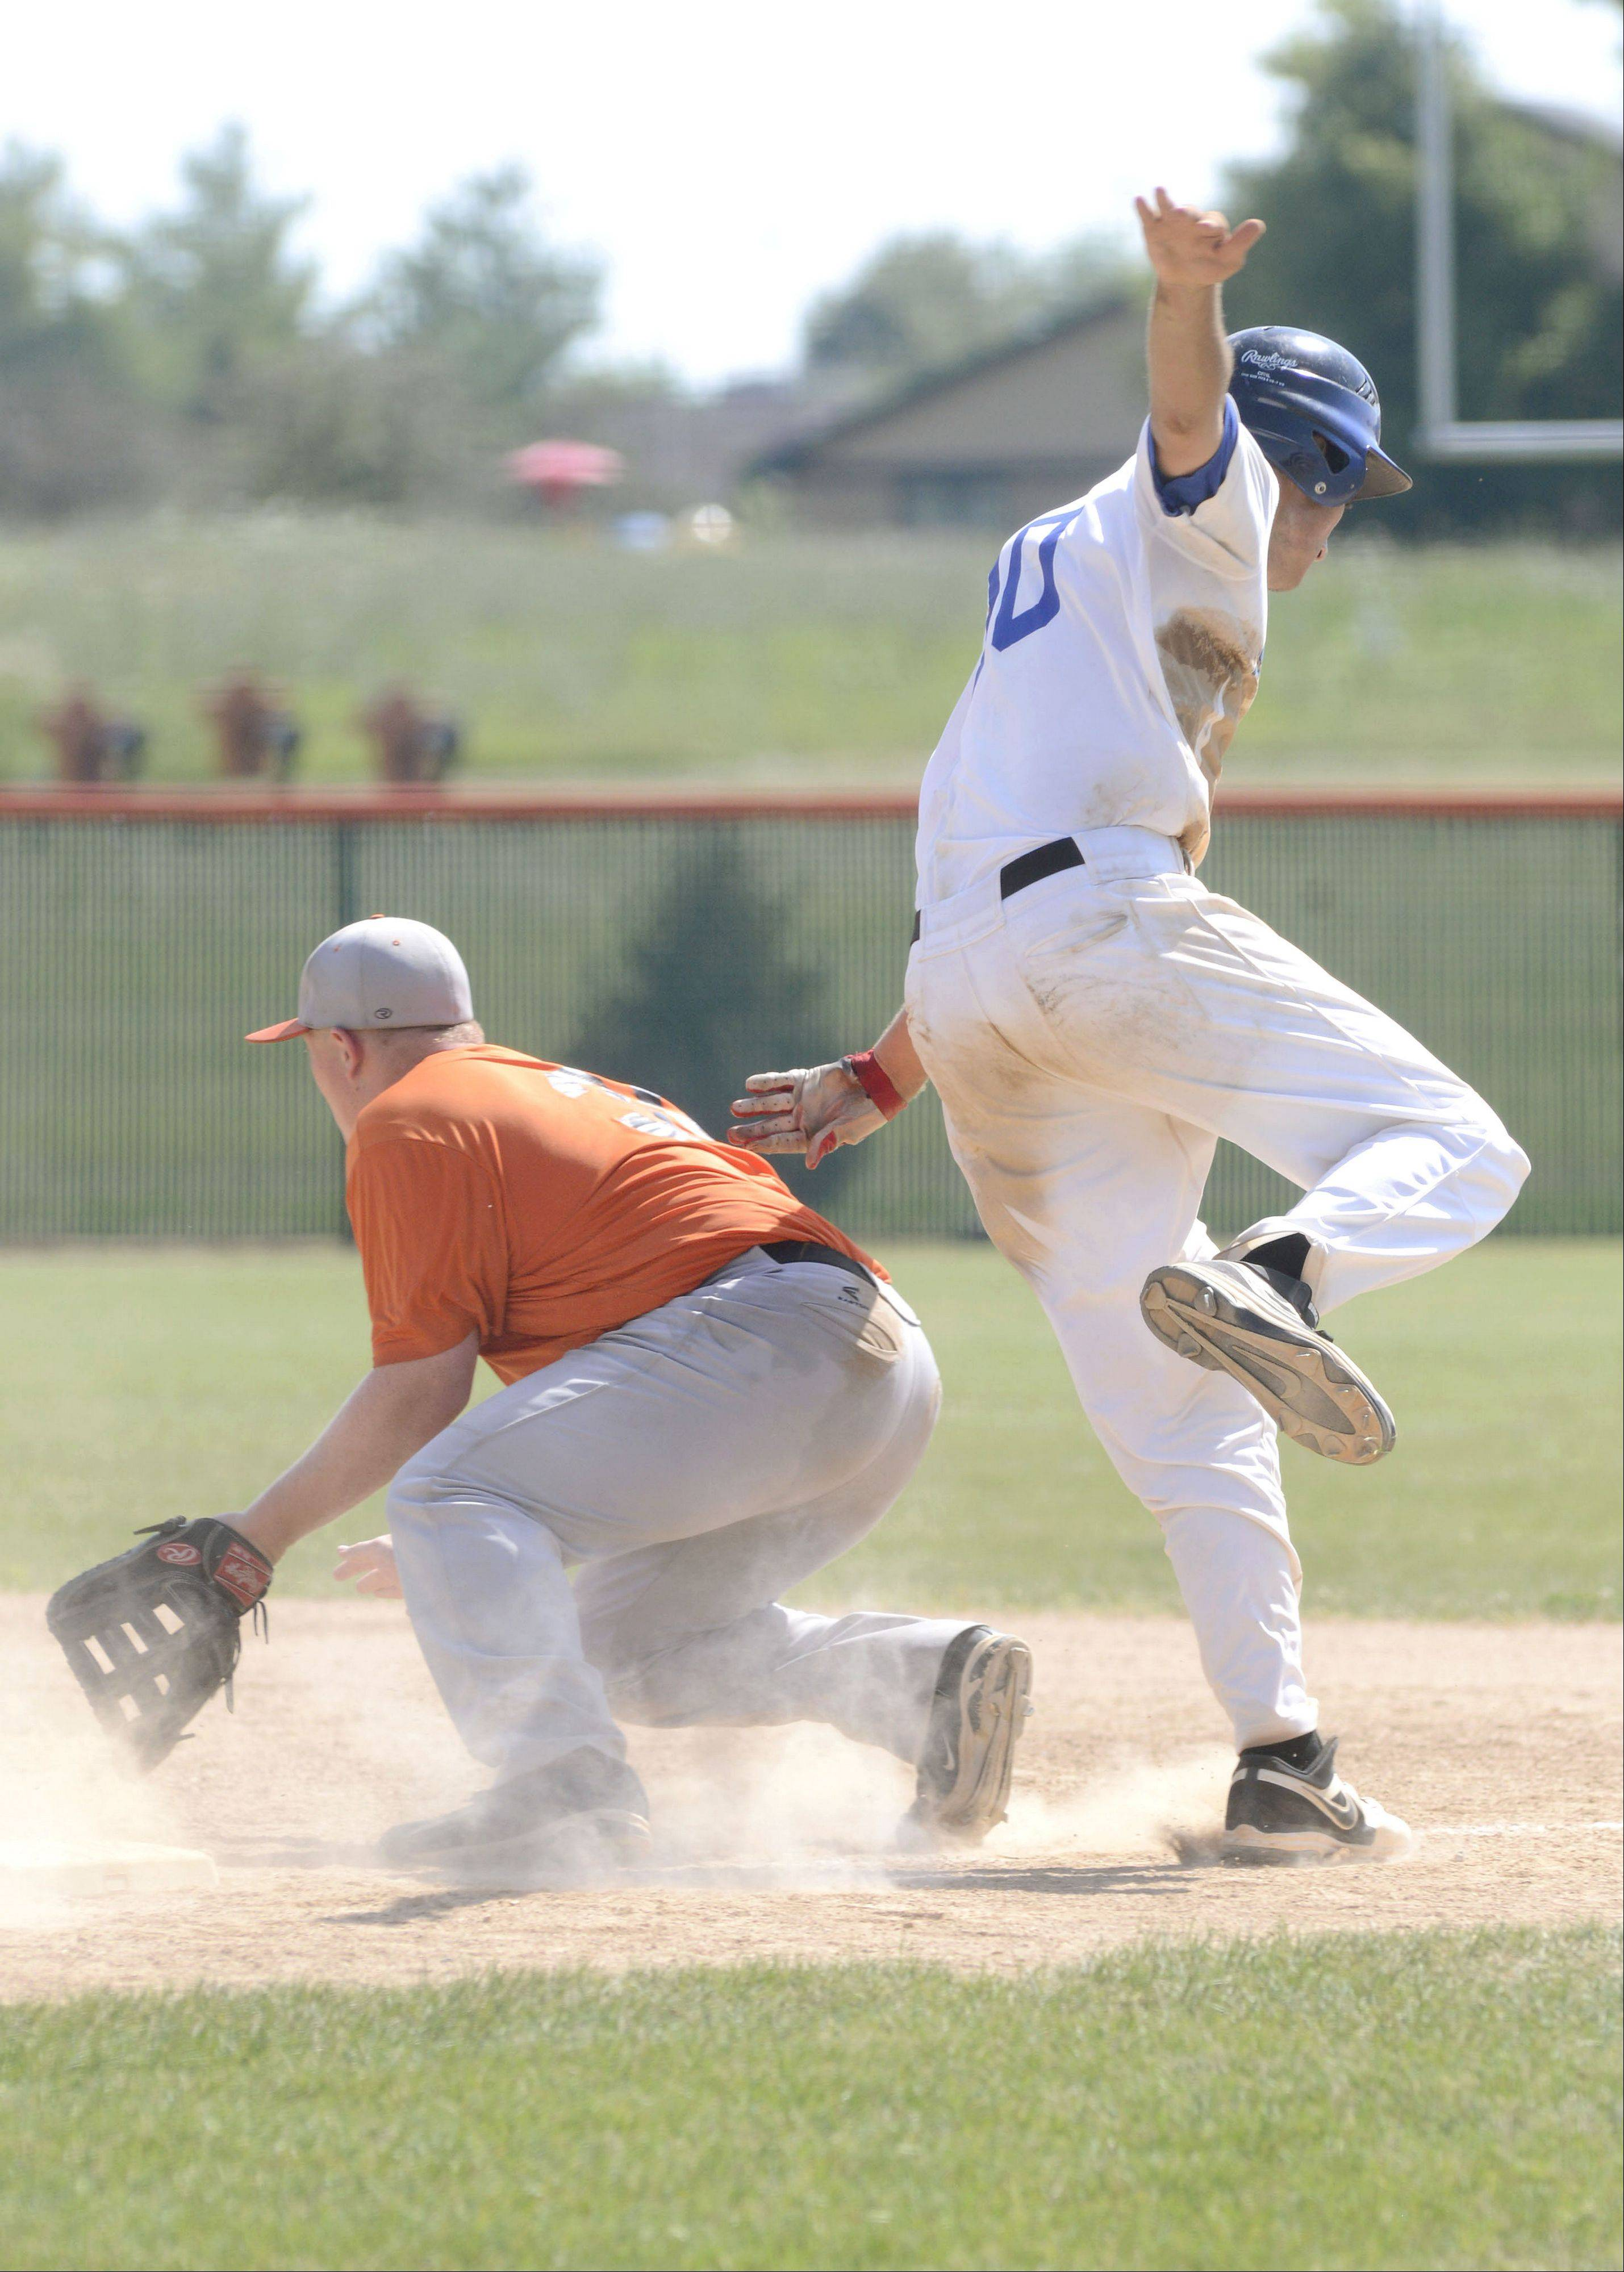 St. Charles North's Joe Kuczek springs off the back of St. Charles East's Ben Smith to avoid a collision while running for first base in the St. Charles East summer tournament semifinals on Wednesday, July 17. Kuczek was safe.